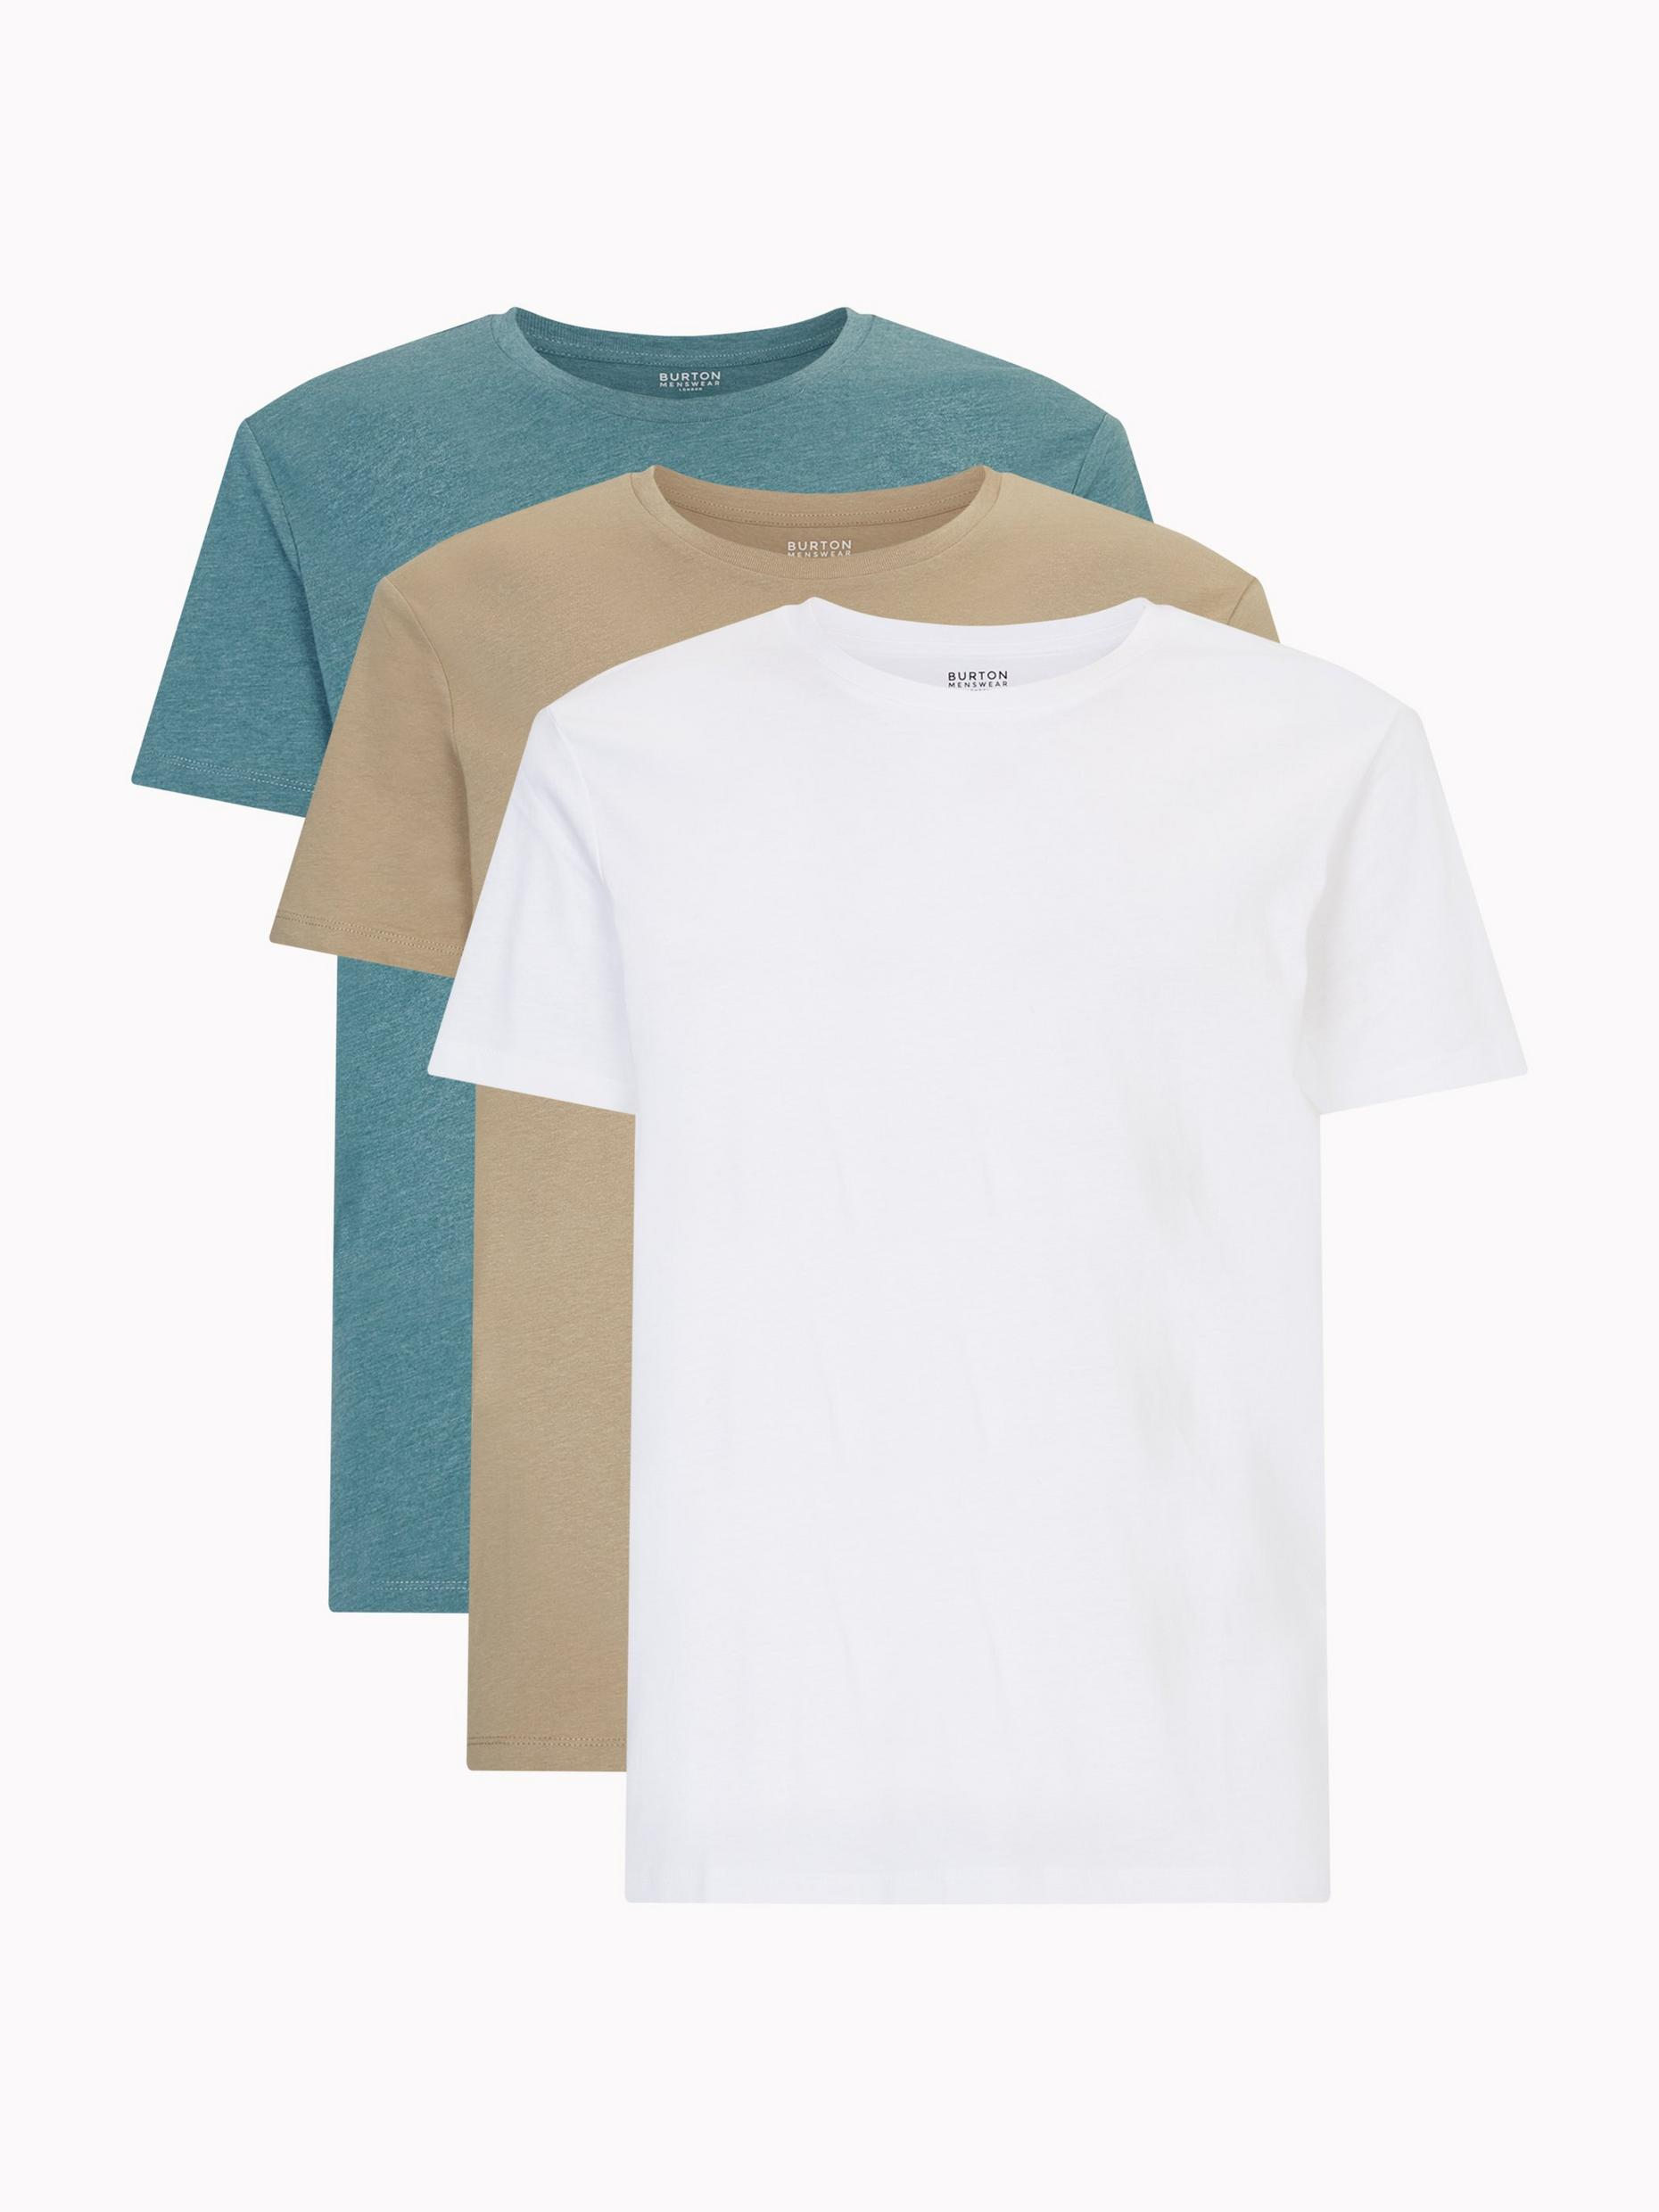 3 Pack White; Stone and Duck Egg Organic T-Shirts